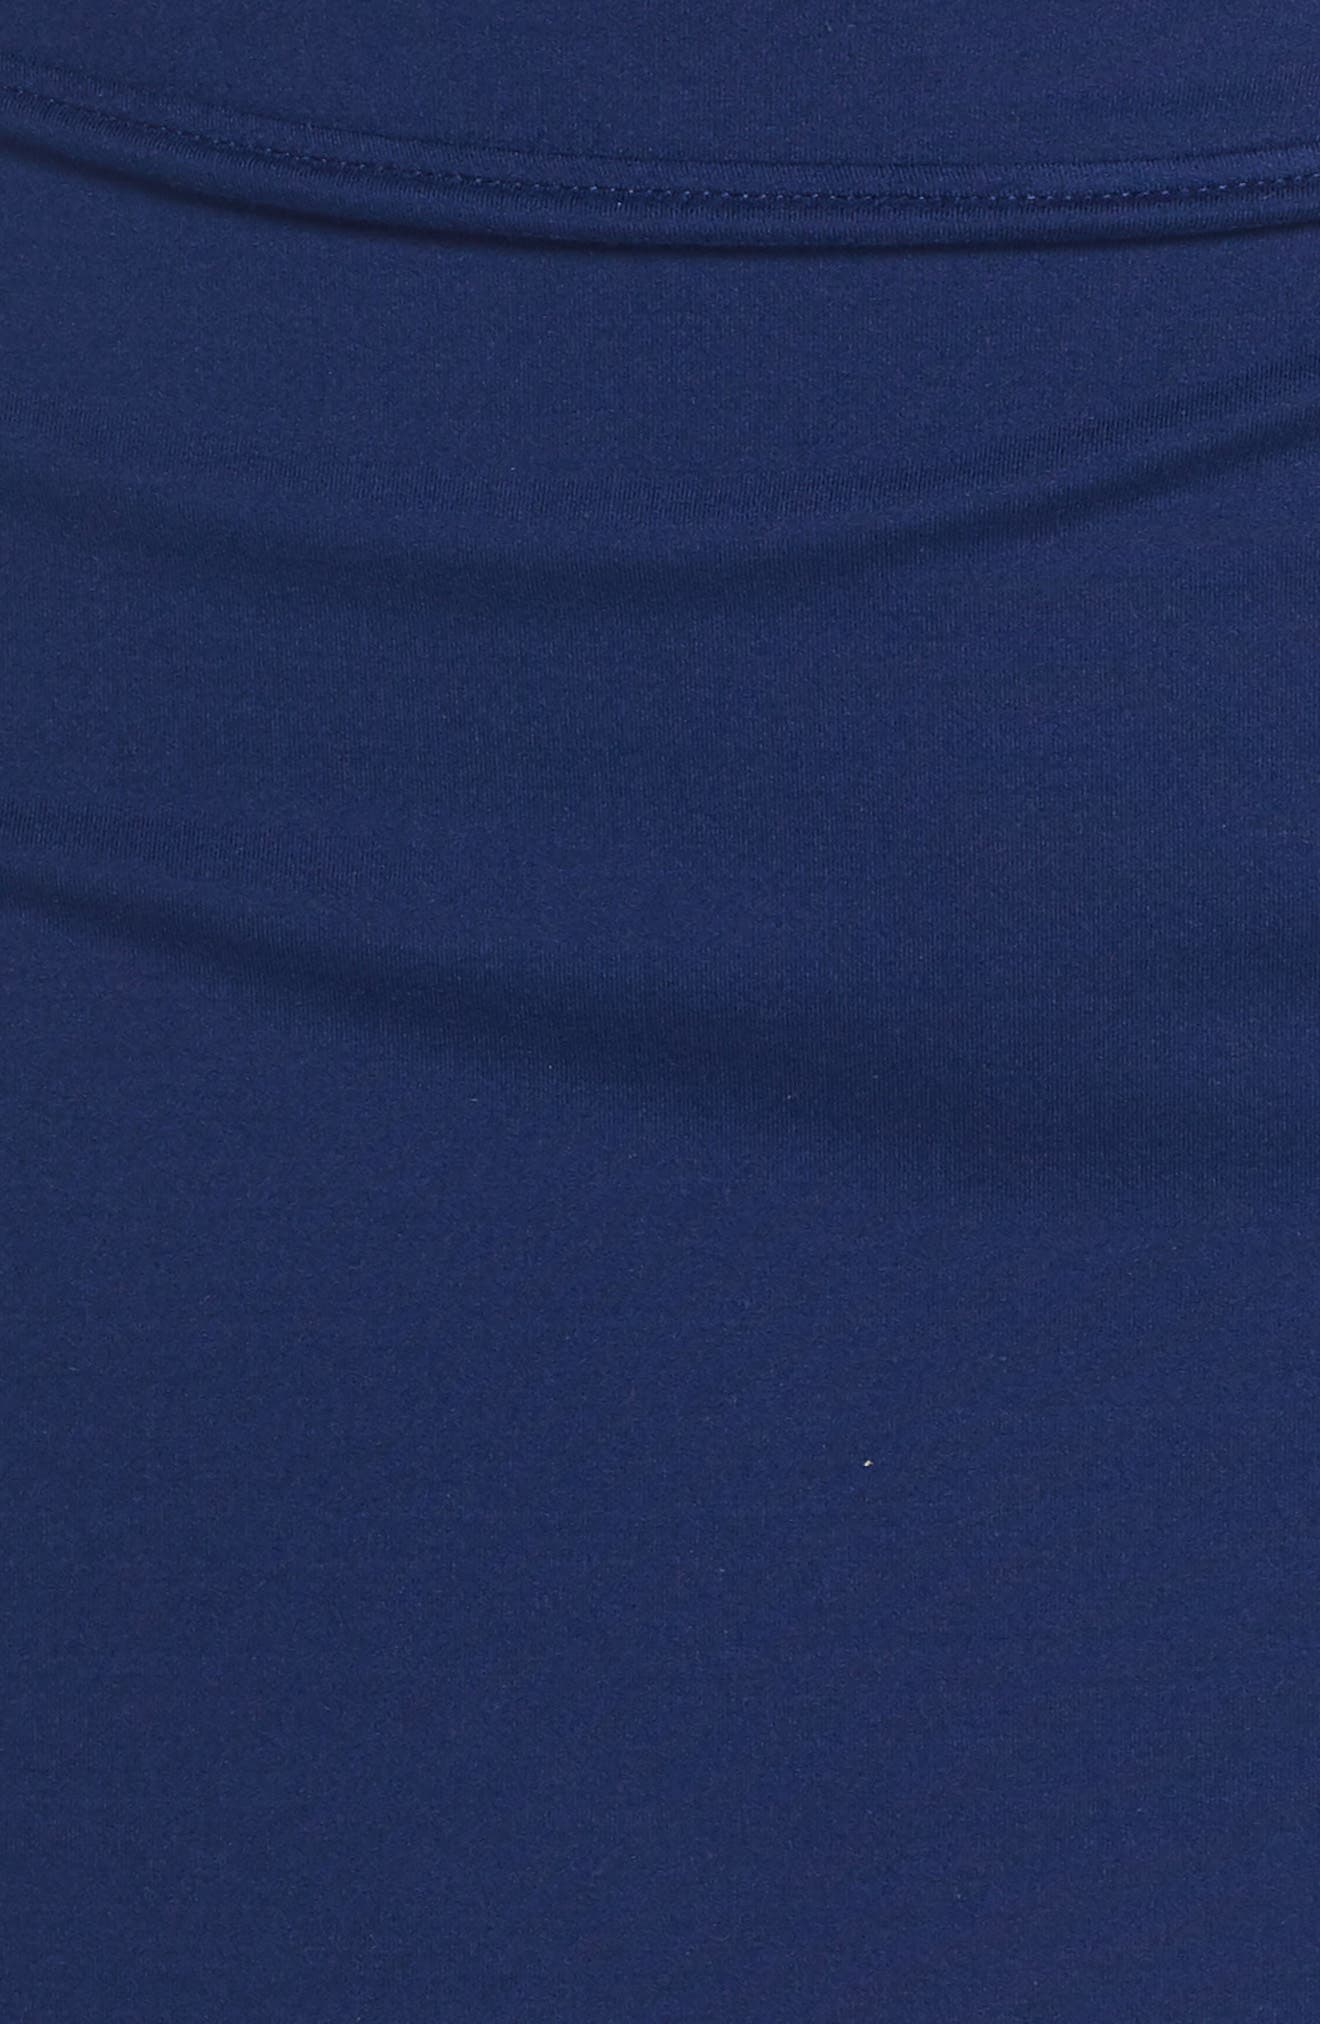 'Pure' Dri-FIT Tennis Skirt,                             Alternate thumbnail 6, color,                             BLUE VOID/ WHITE